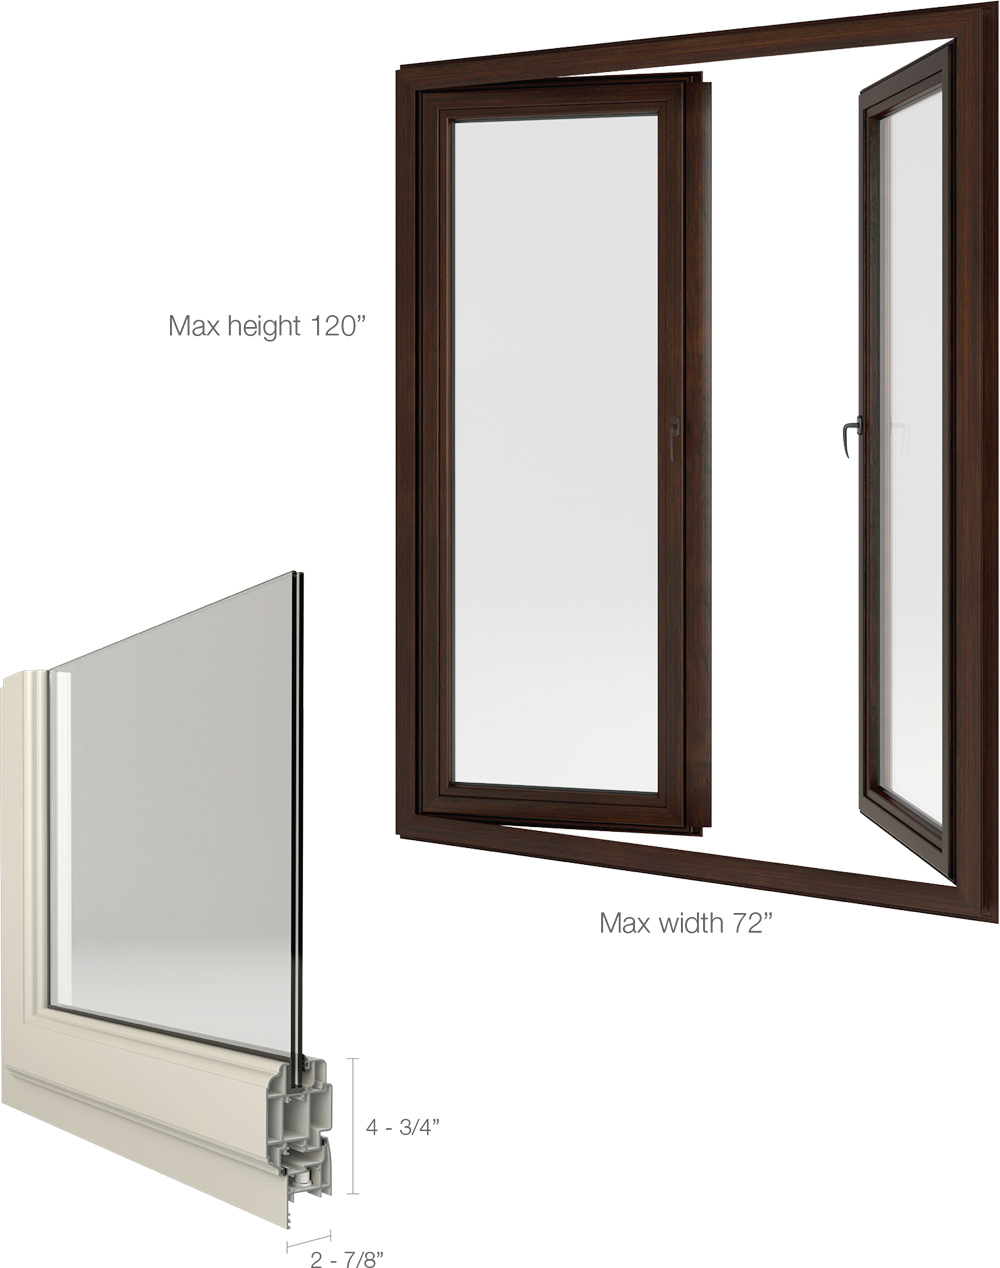 European style push out casement windows available as single or double casements the double casement has a built in astragal that moves with the inactive